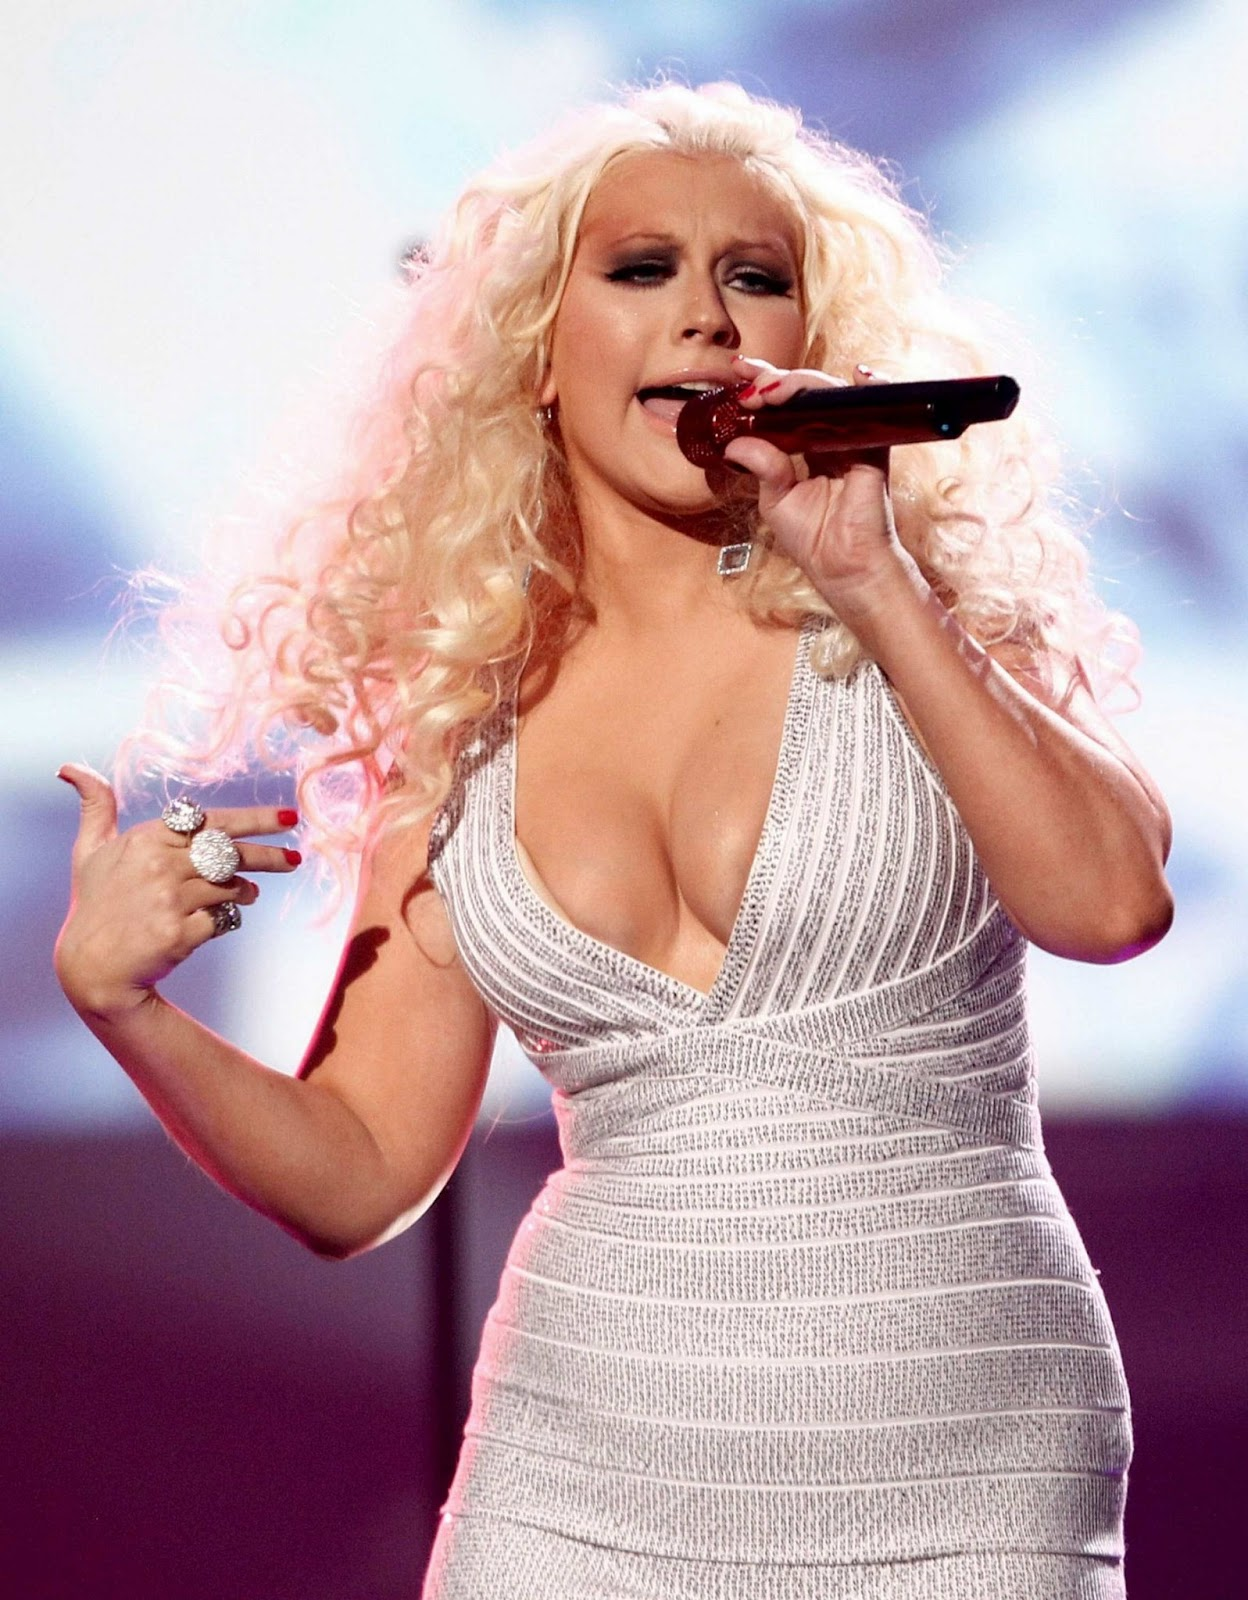 Bikini Christina Aguilera nude (22 photos), Sexy, Fappening, Boobs, lingerie 2015